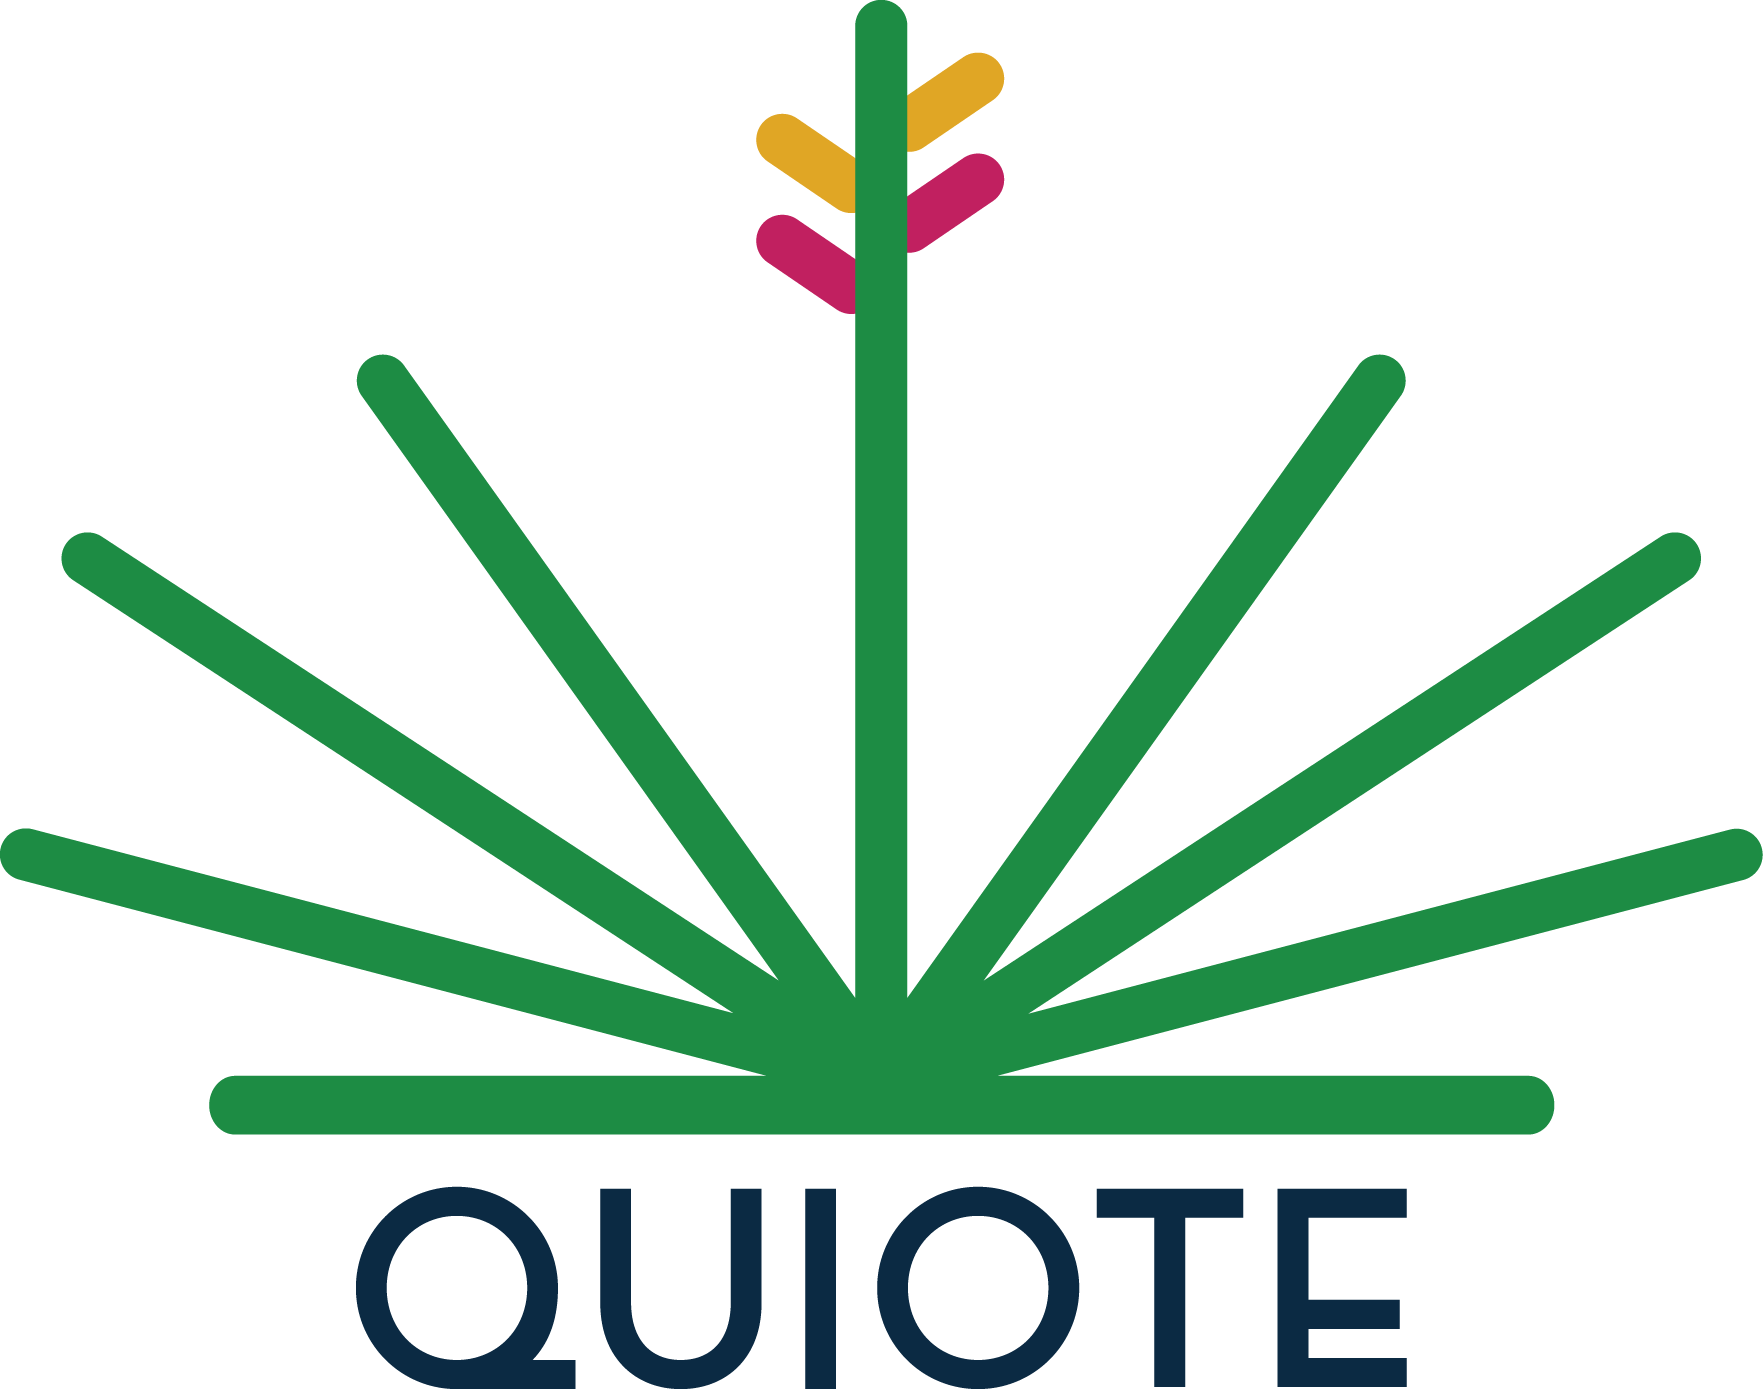 Quiote.PNG